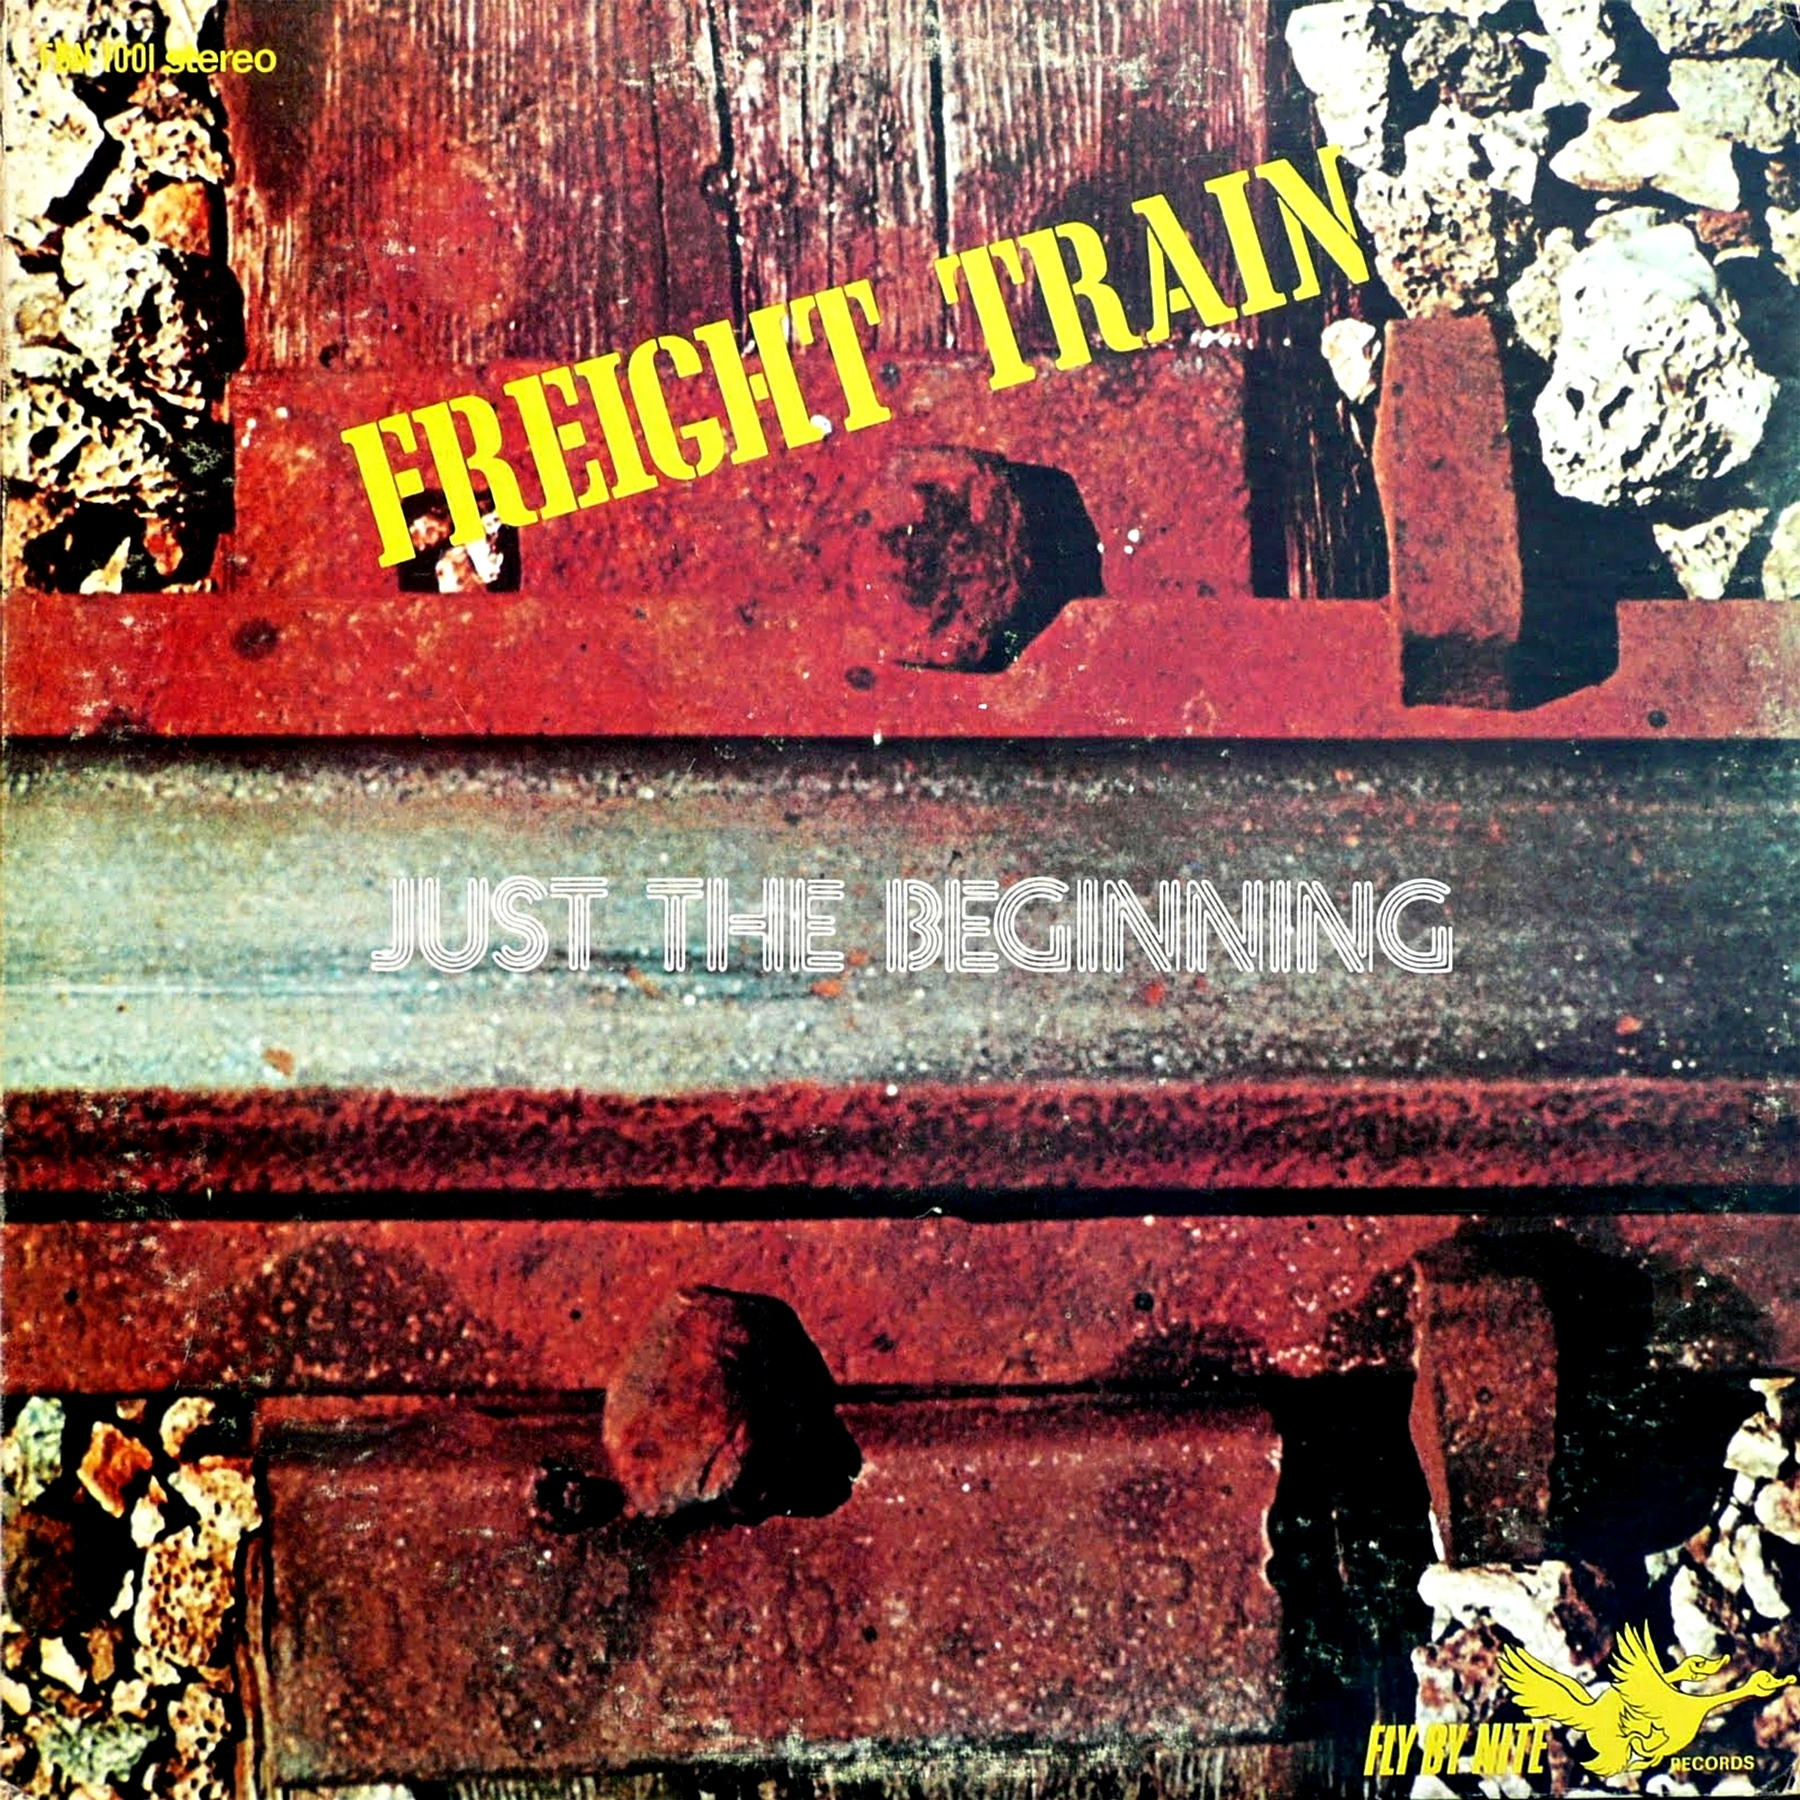 Freight Train - I Loved Another Woman